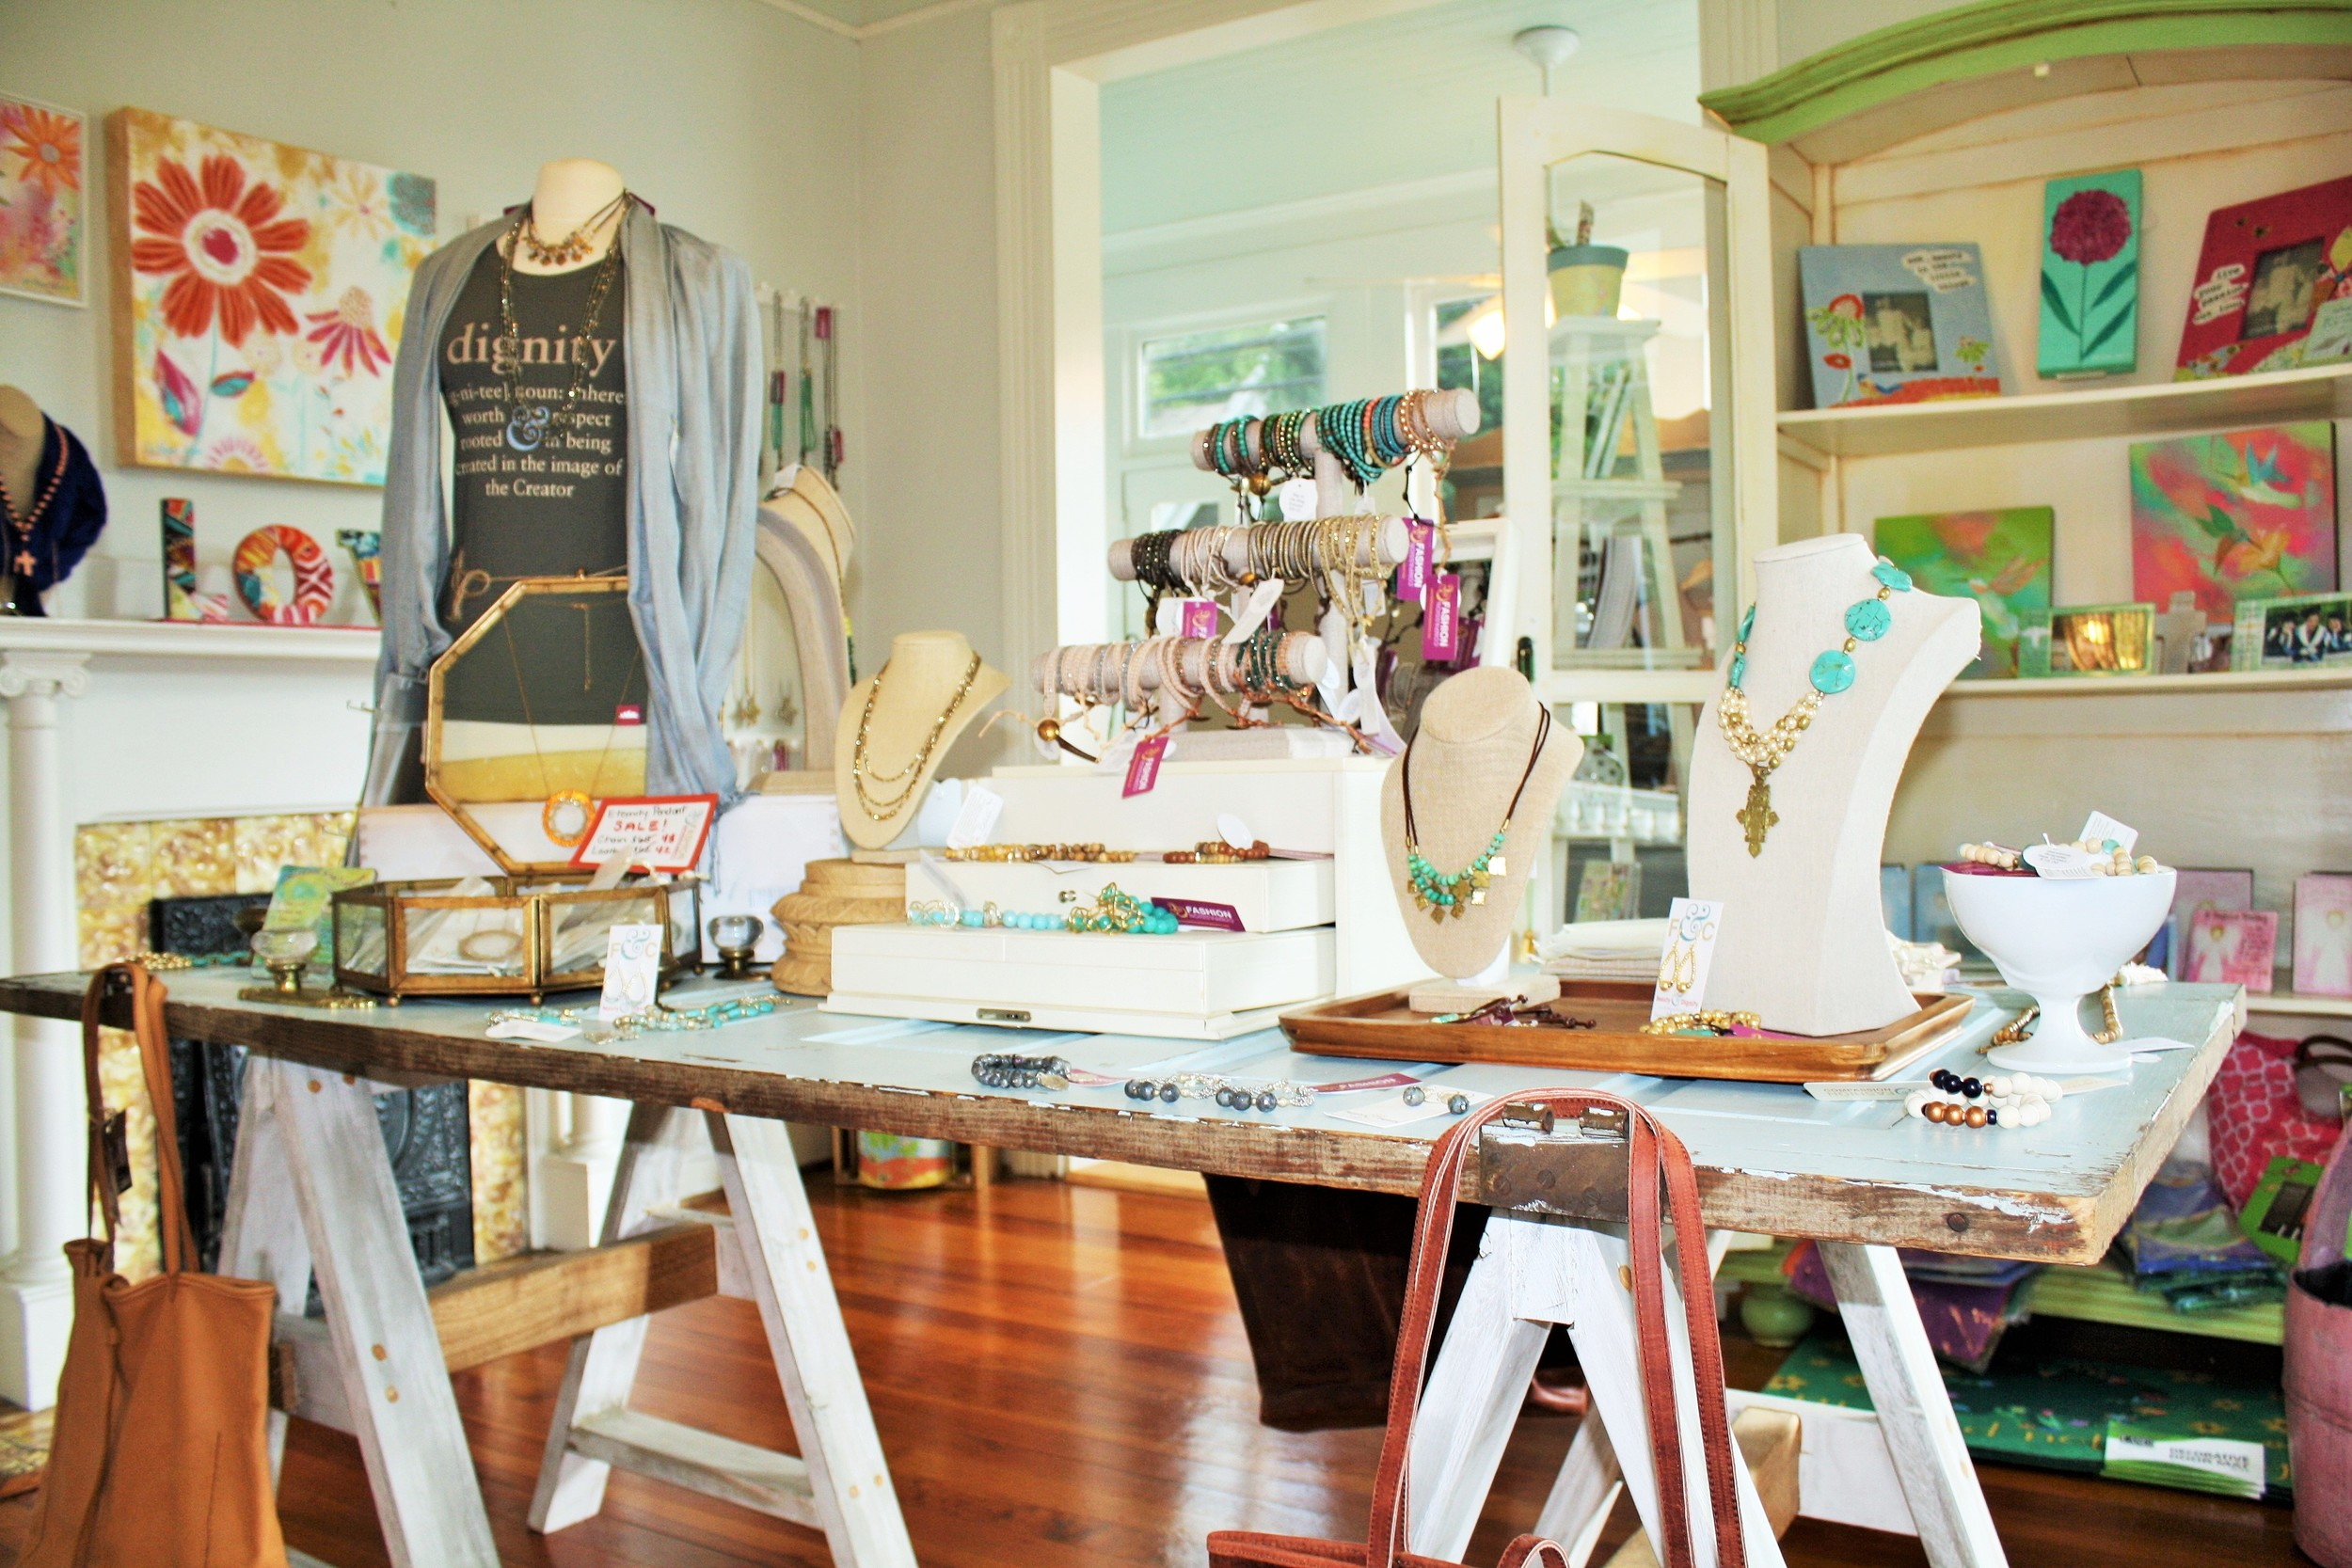 This is just one of three rooms in the house that has been converted to a boutique - SO CUTE!!!